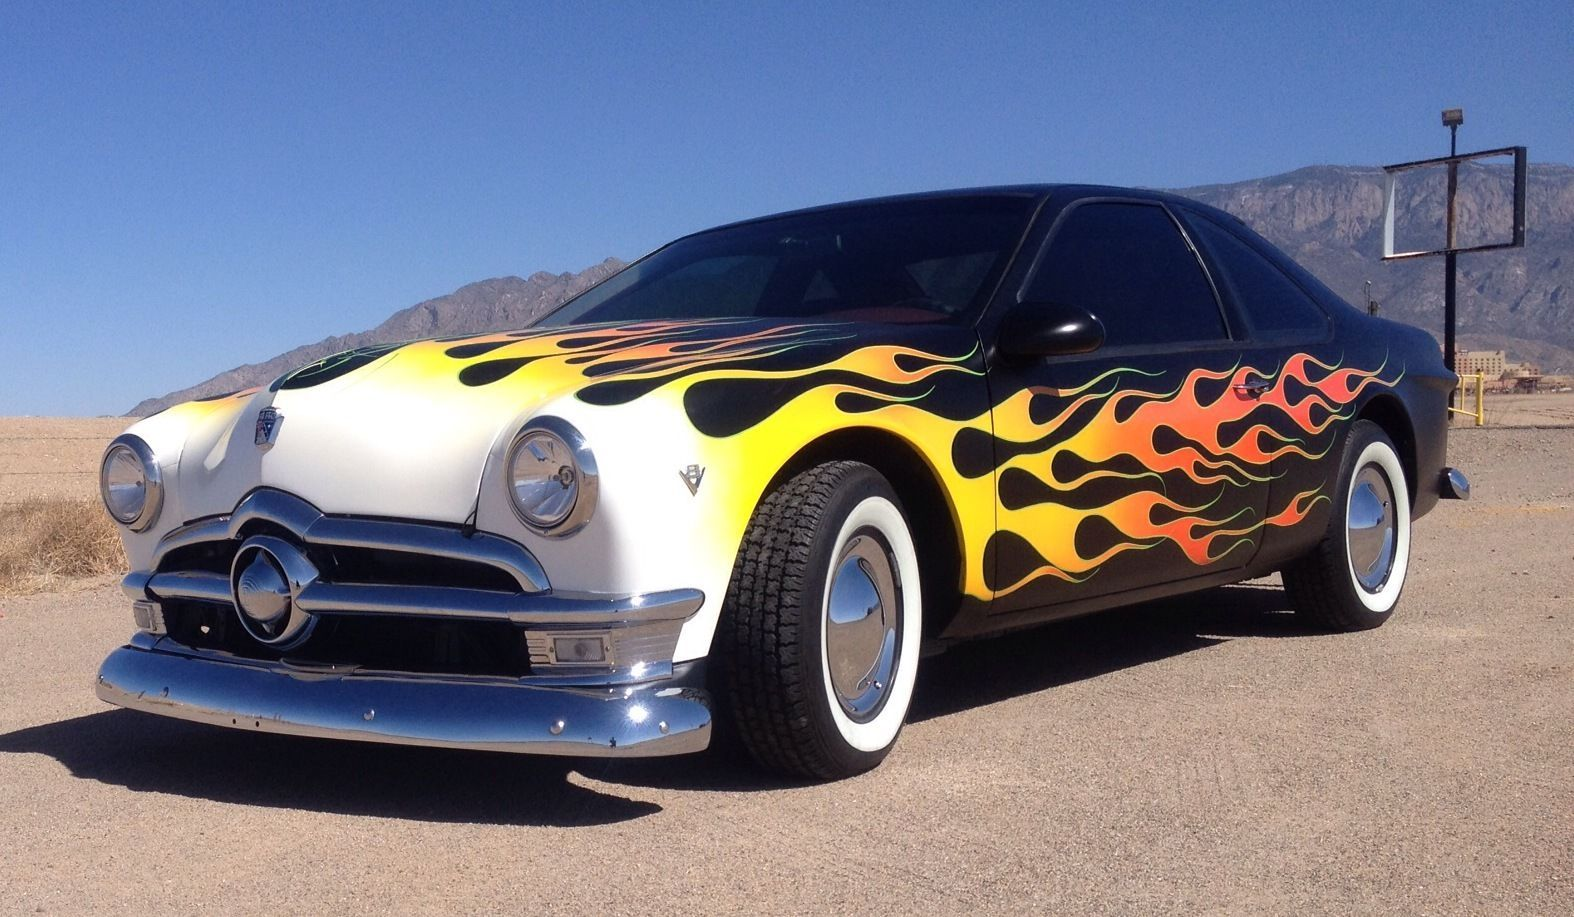 1996 Ford Thunderbird Lx Custom Hot Rod